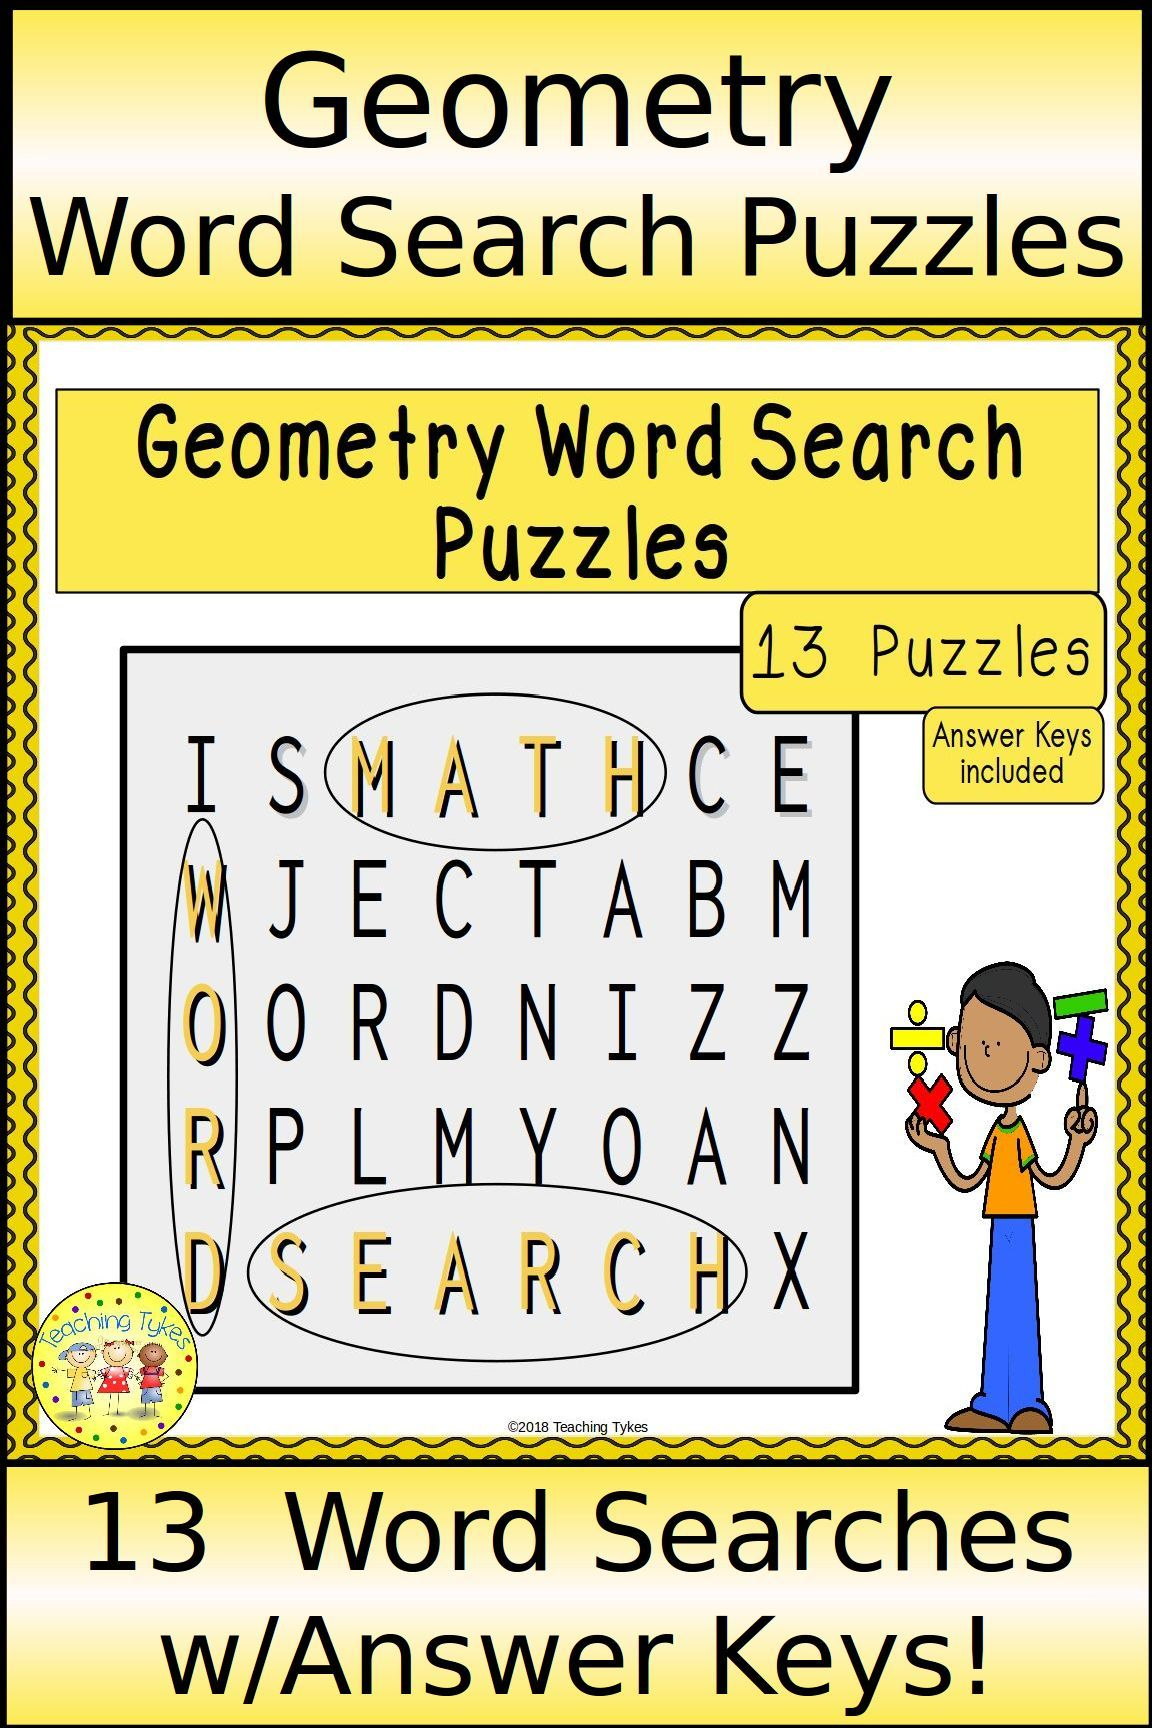 Geometry word search puzzles geometry words geometry